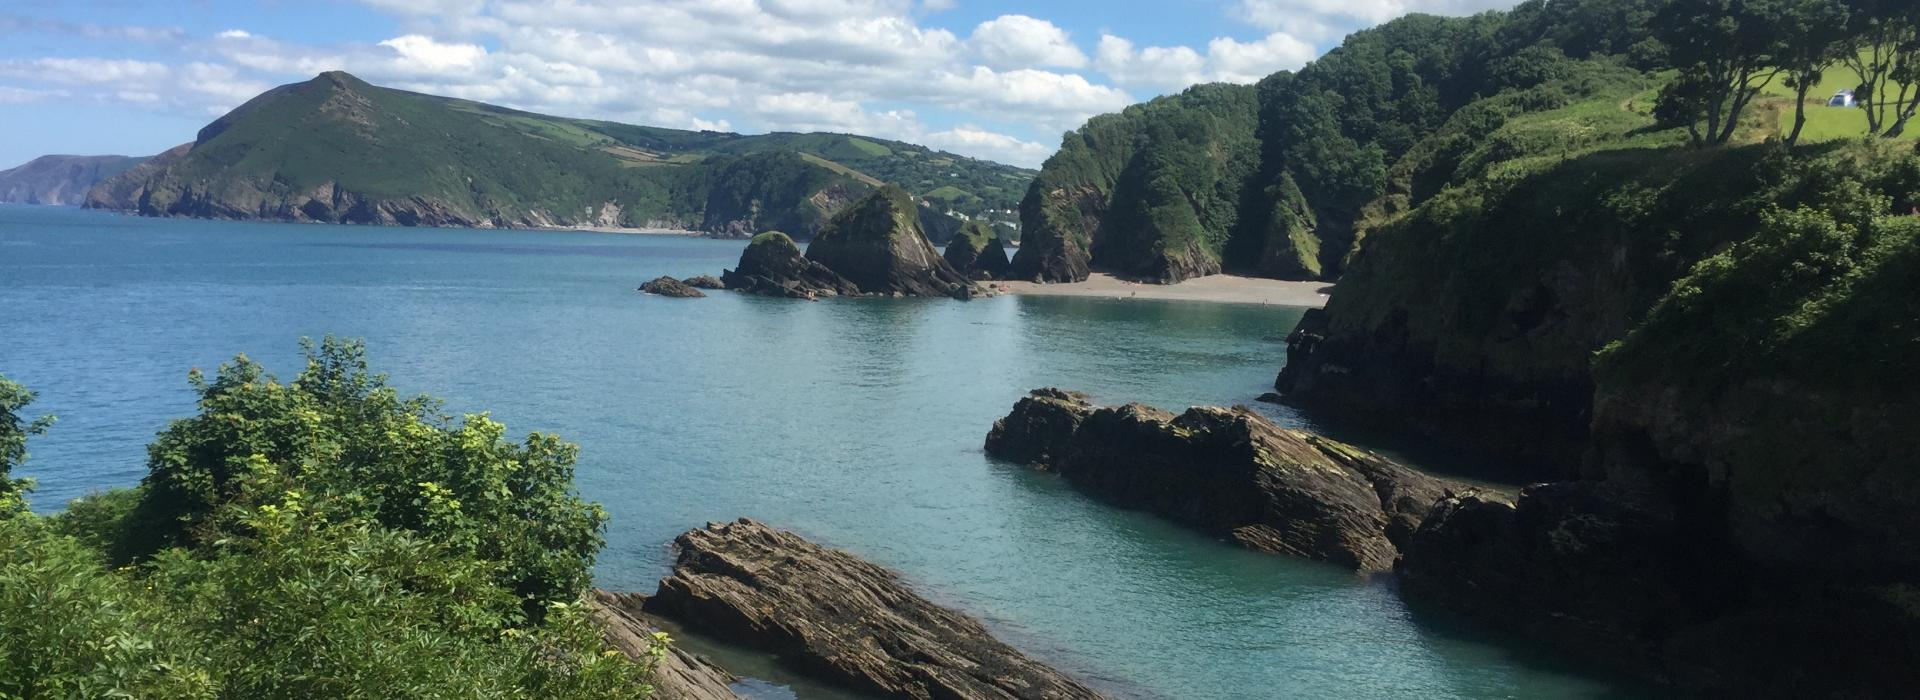 places to stay in devon, north devon, activities, holiday accommodation, family accommodation